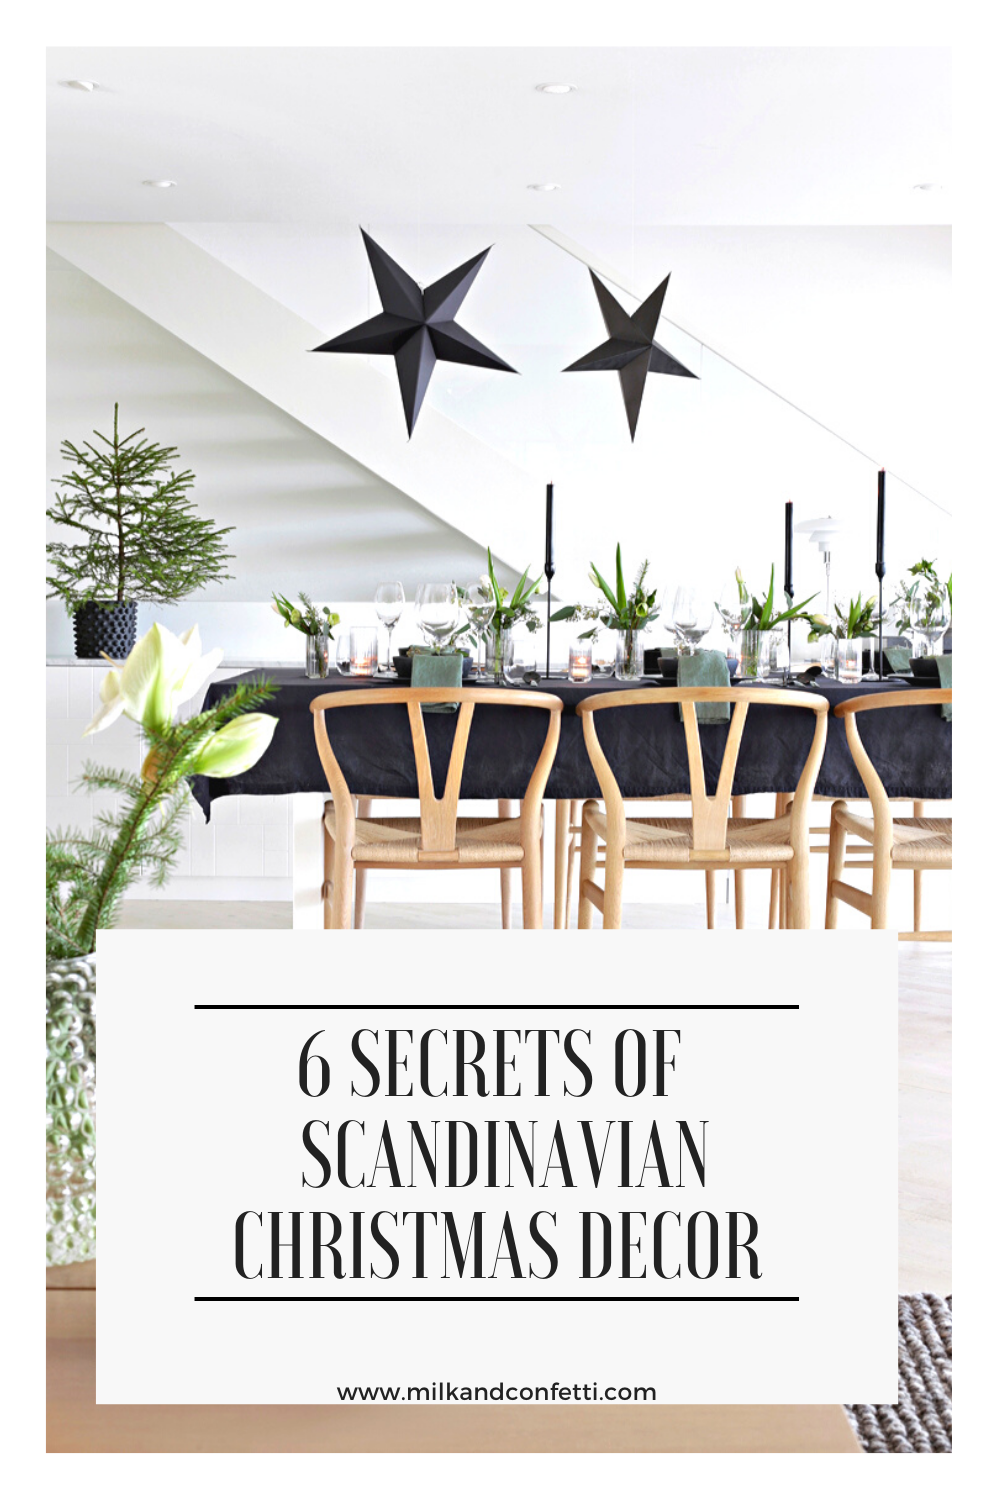 A scandinavian nordic inspired dining room with wishbone wooden chairs, a dining table covered with a black table cloth, black star lights, candles and greenery set up with minimal and modern decor for the Christmas holidays.